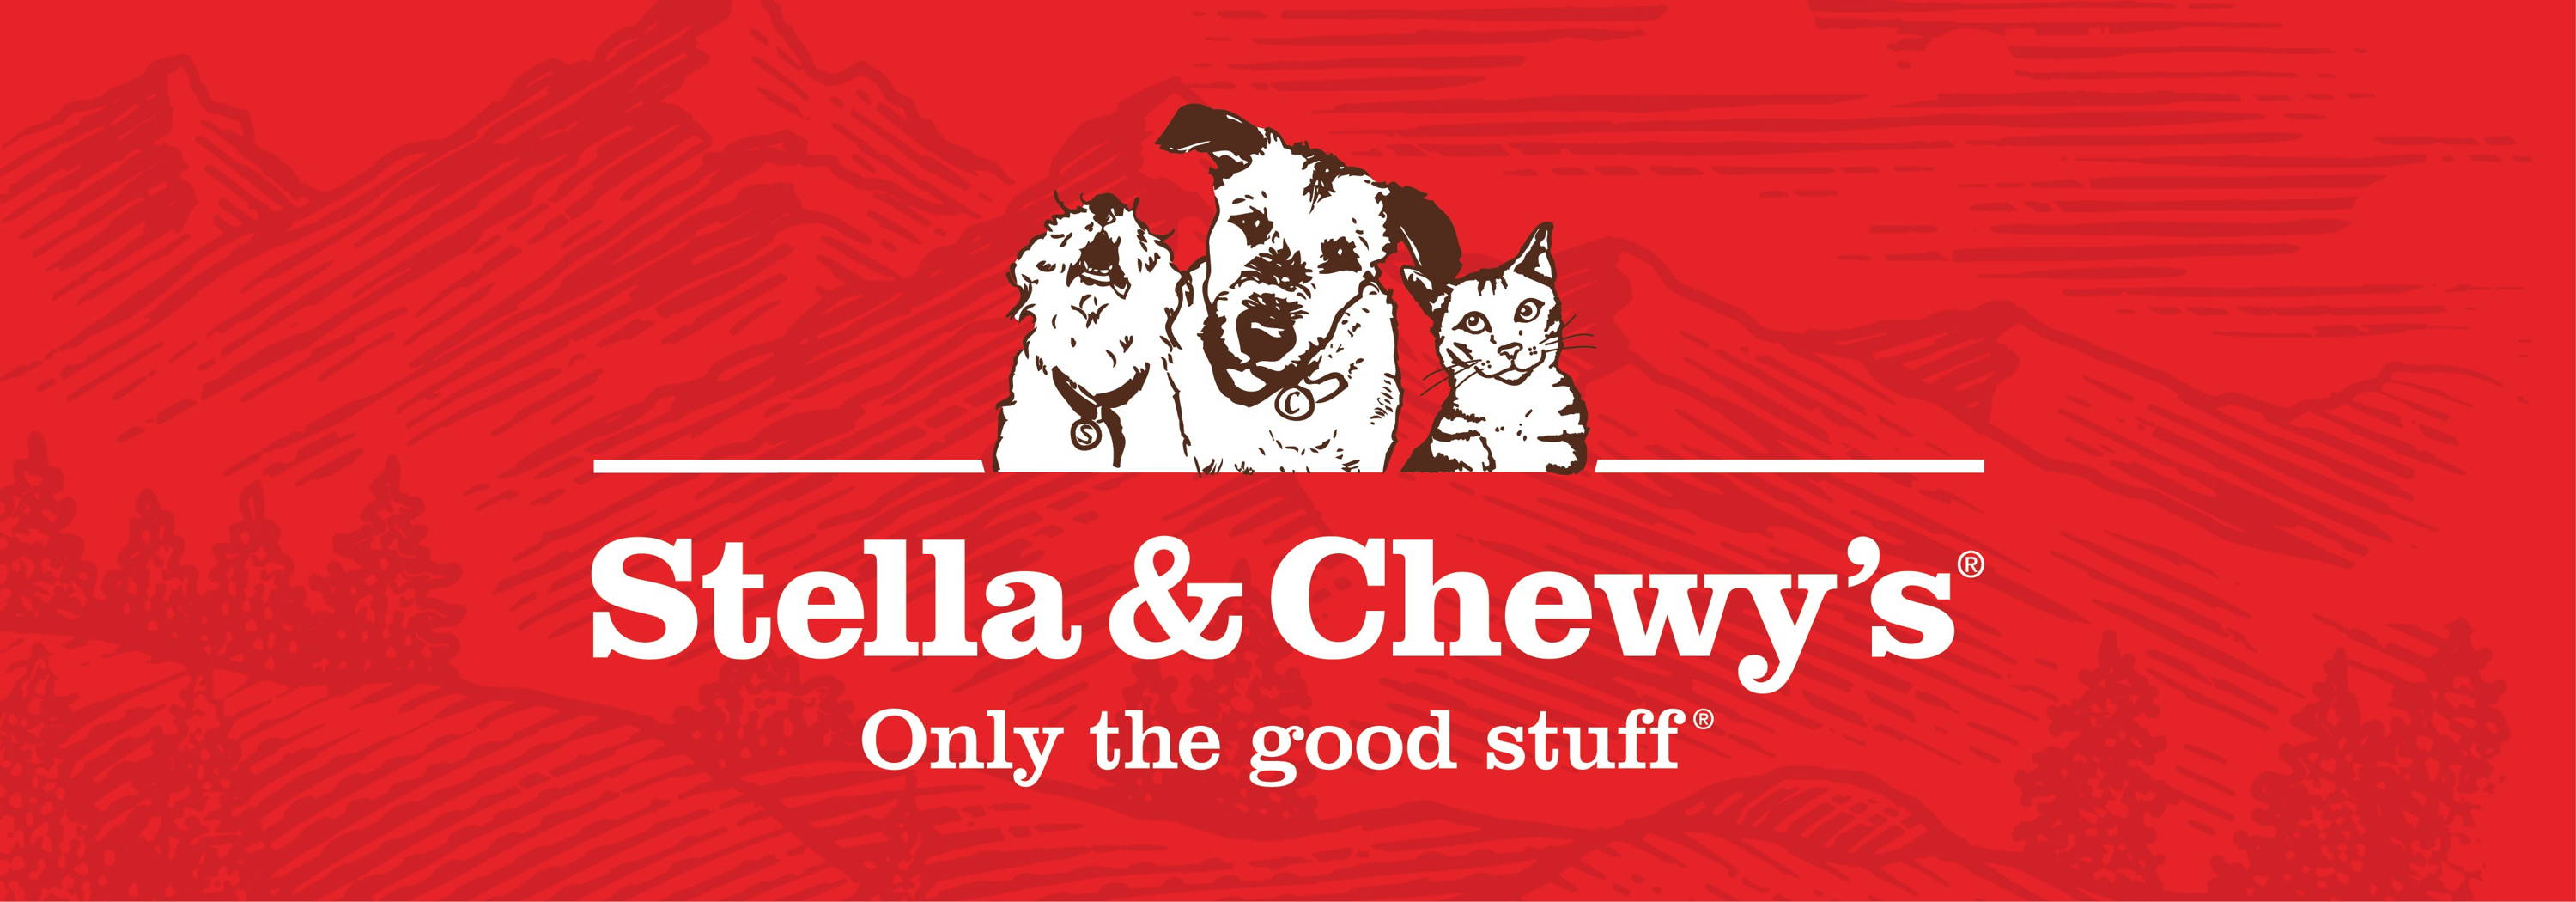 Stella & Chewy's Pet Food and Treats